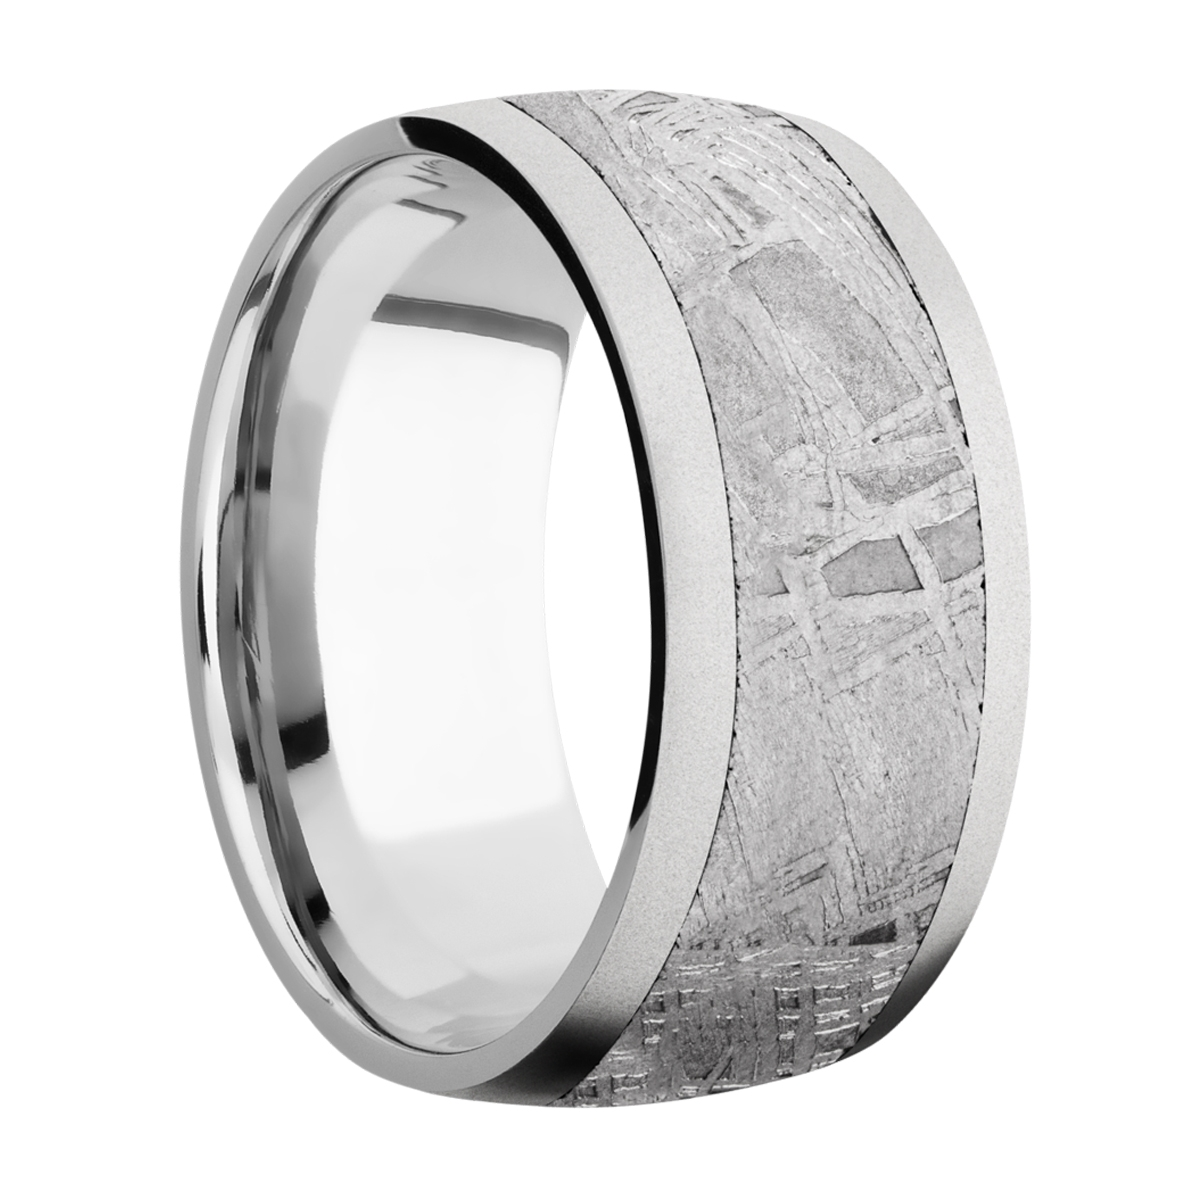 Lashbrook CC10D17/METEORITE Cobalt Chrome Wedding Ring or Band Alternative View 1